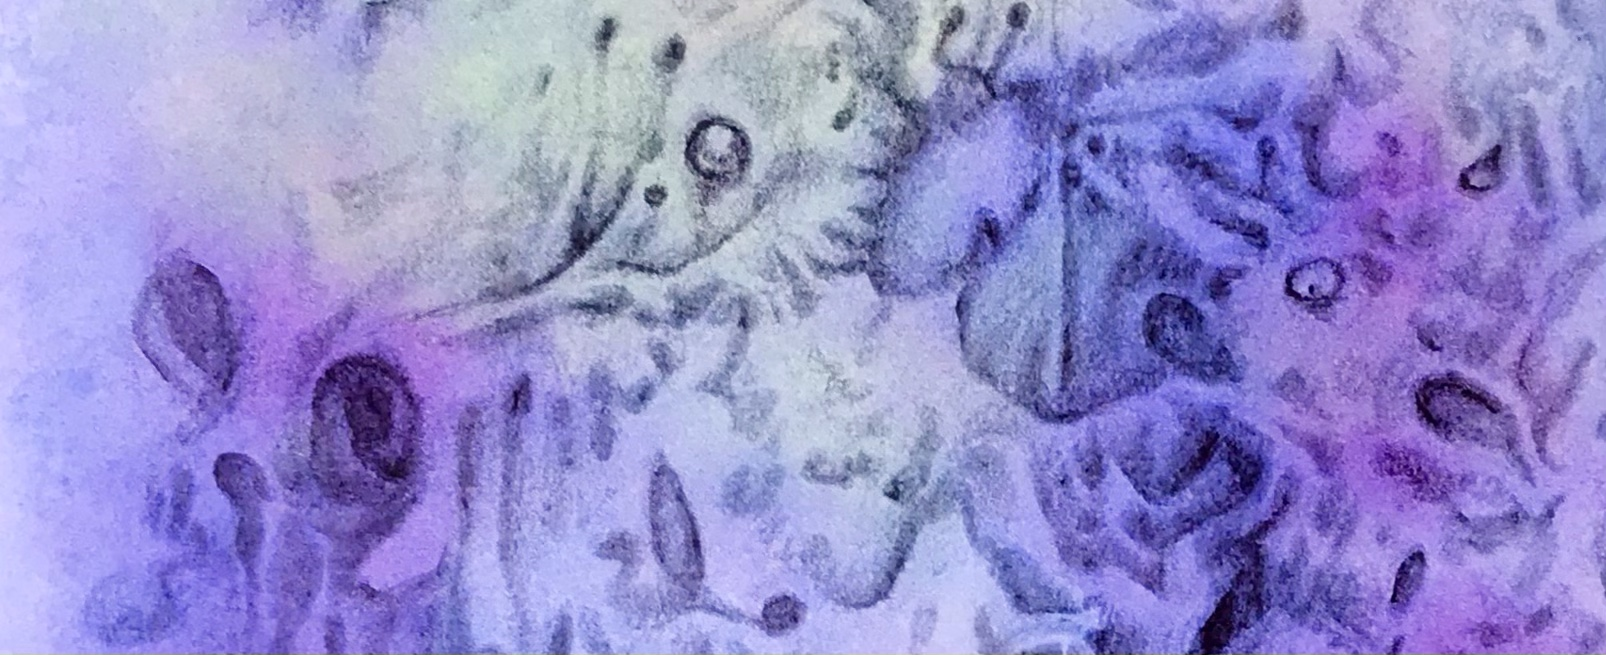 Detail of a biomorphic drawing in graphite pencil over an abstract watercolor painting by MJ Seal